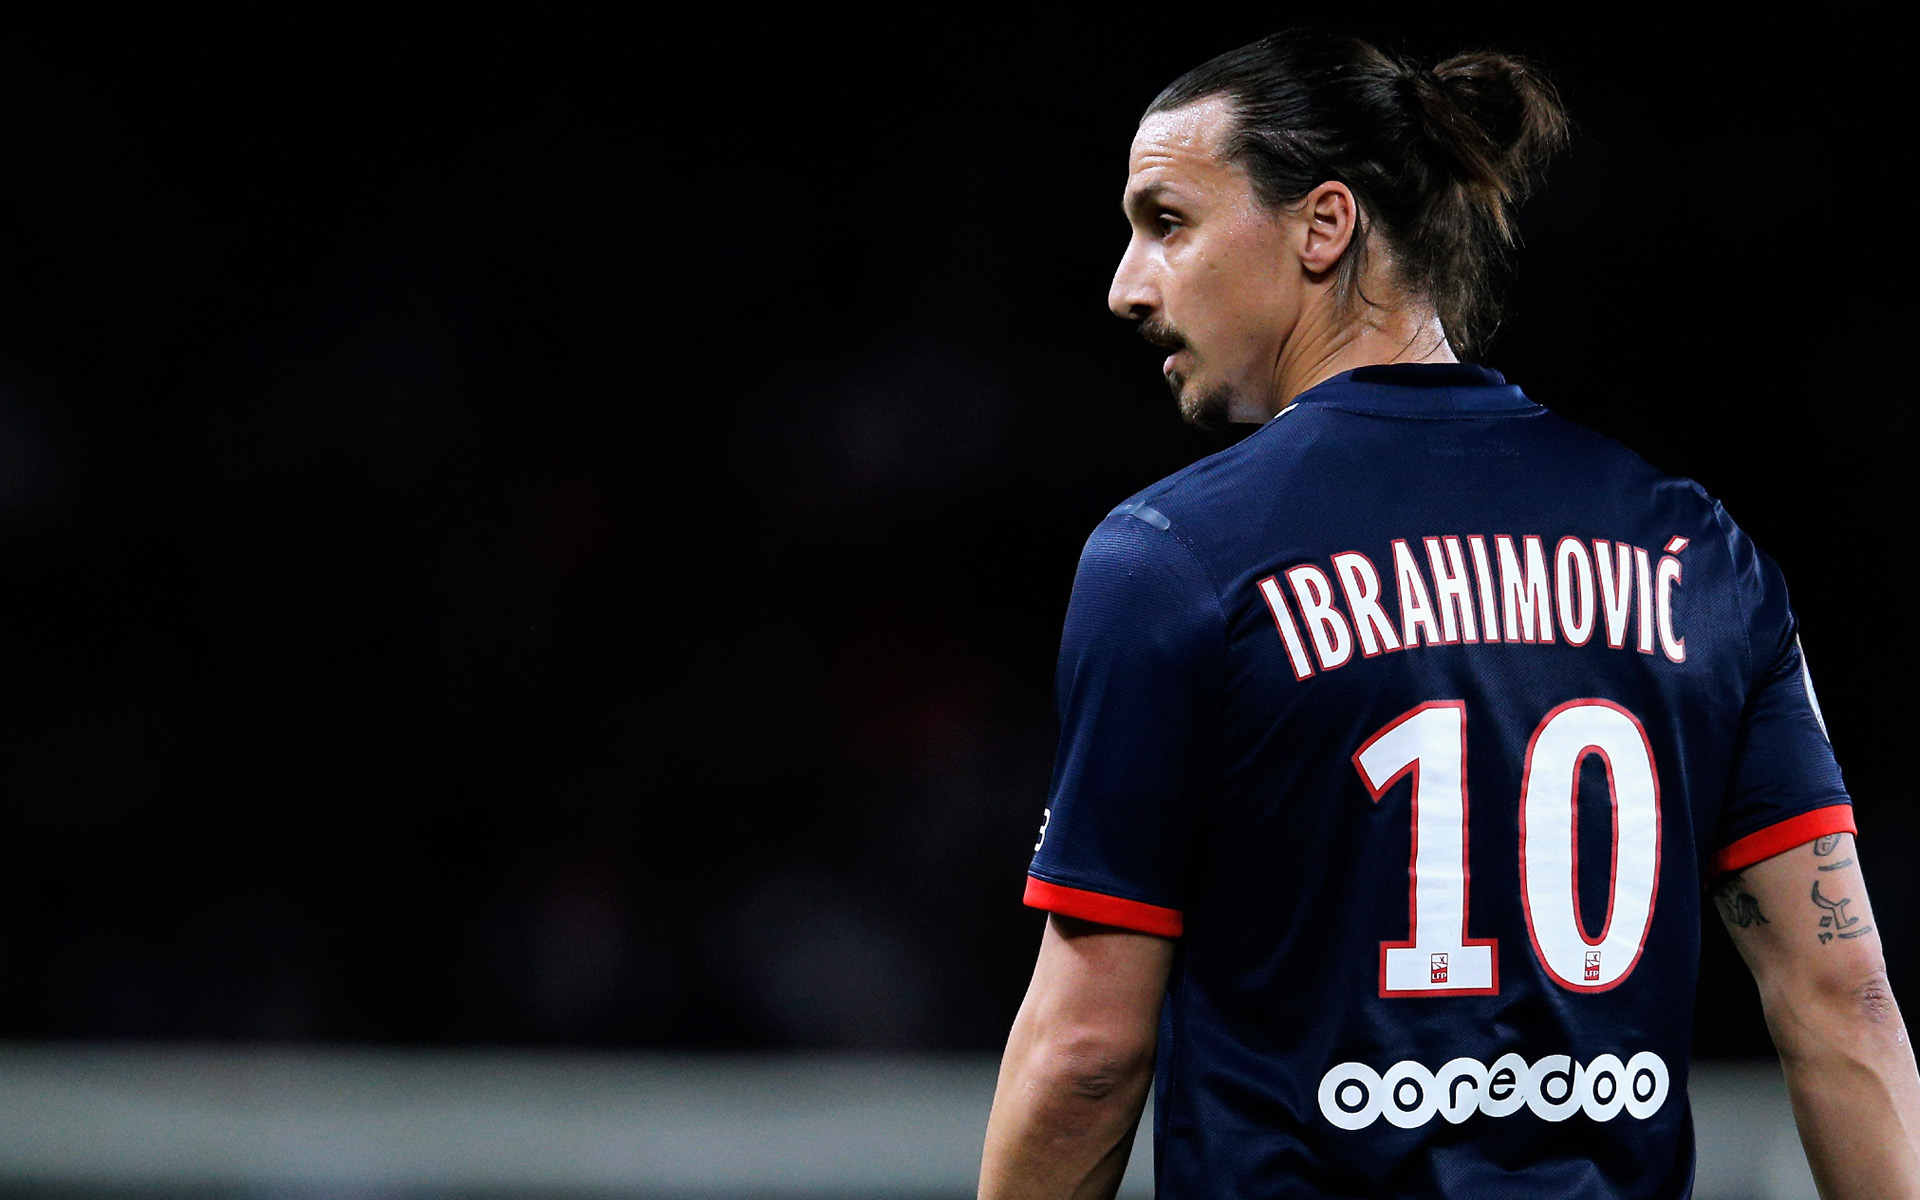 zlatan ibrahimovic wallpapers images photos pictures